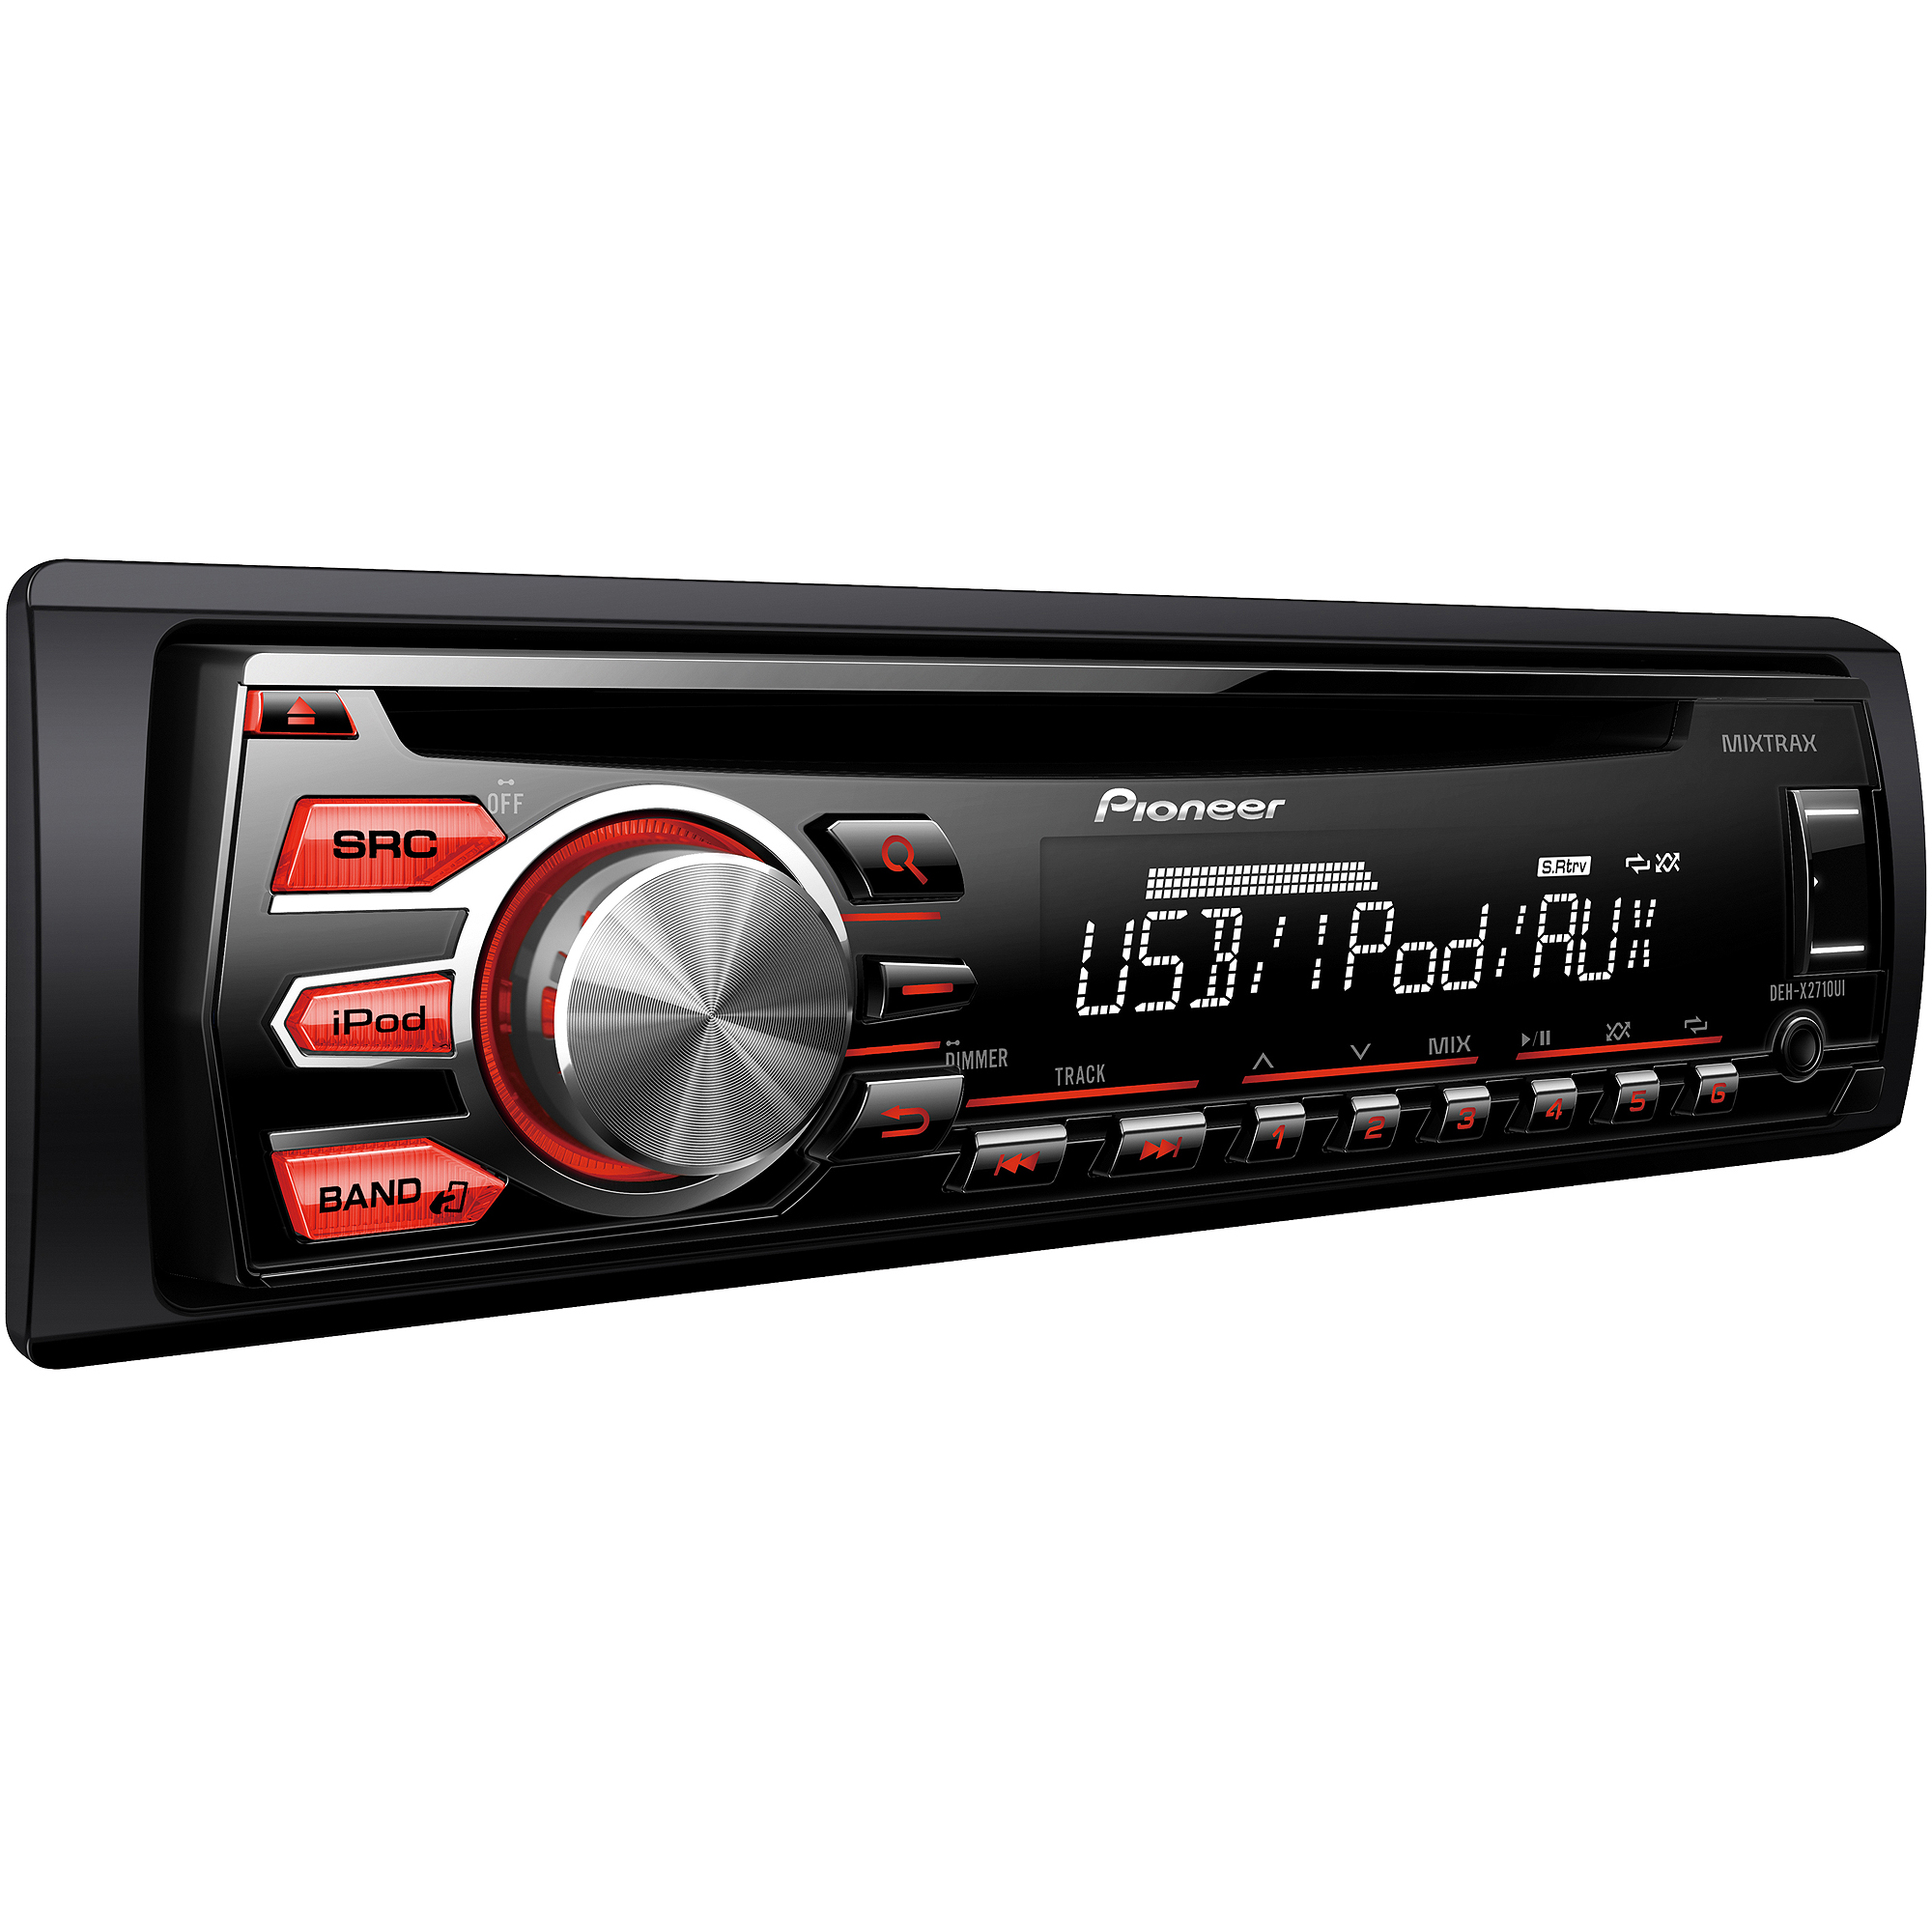 hight resolution of pioneer deh x2710ui single cd receiver with 12 character display walmart com